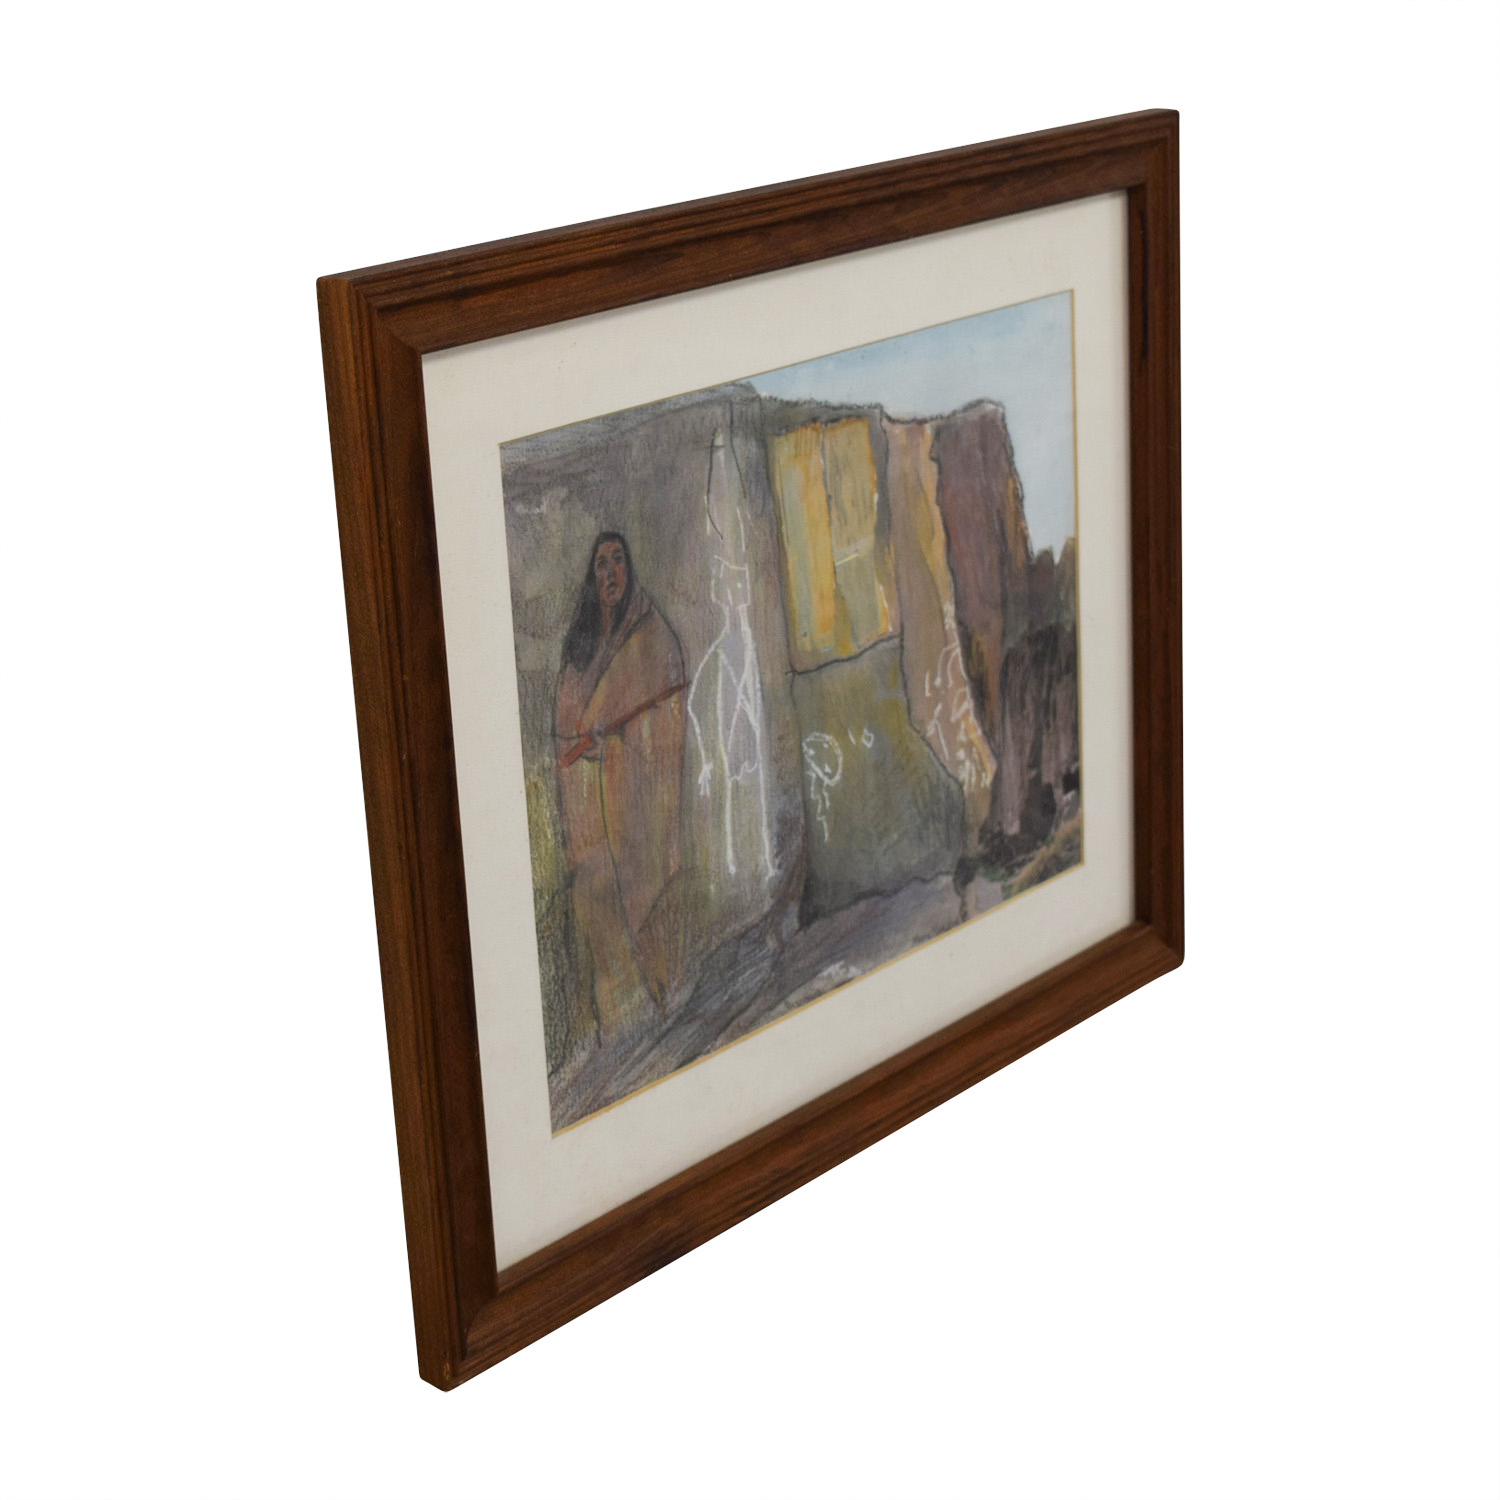 Framed Stone Wall Painting sale